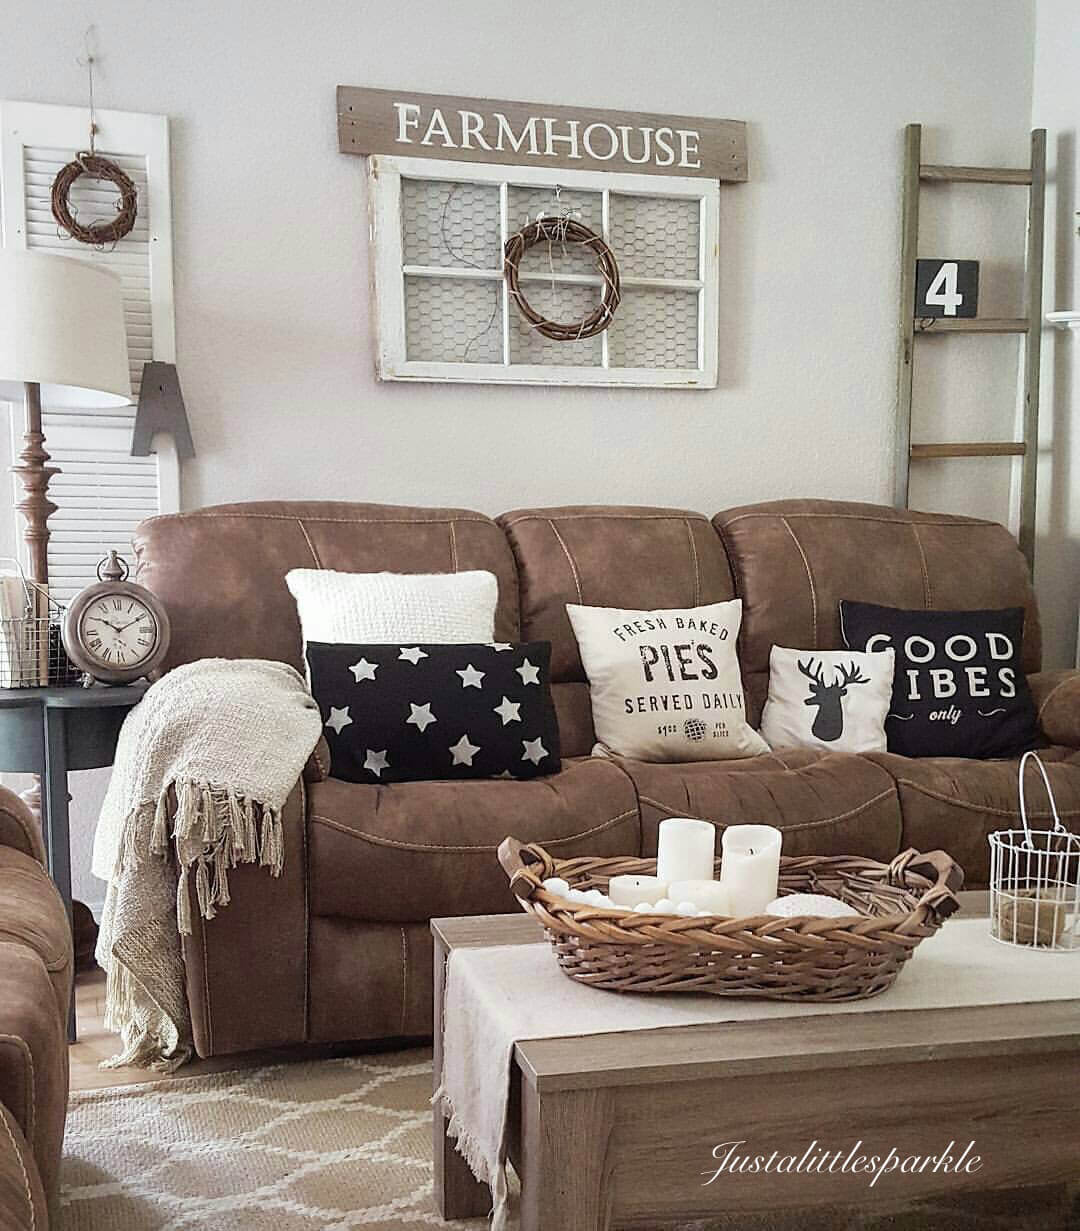 Soulful Designs Living Room Microfiber Couch Farmhouse Living Room Decor Ideas Farmhouse Living Room Decor Ideas 2018 Interior Design Ideas Living Rooms Interior Decorating Ideas interior Interior Decor Ideas Living Room